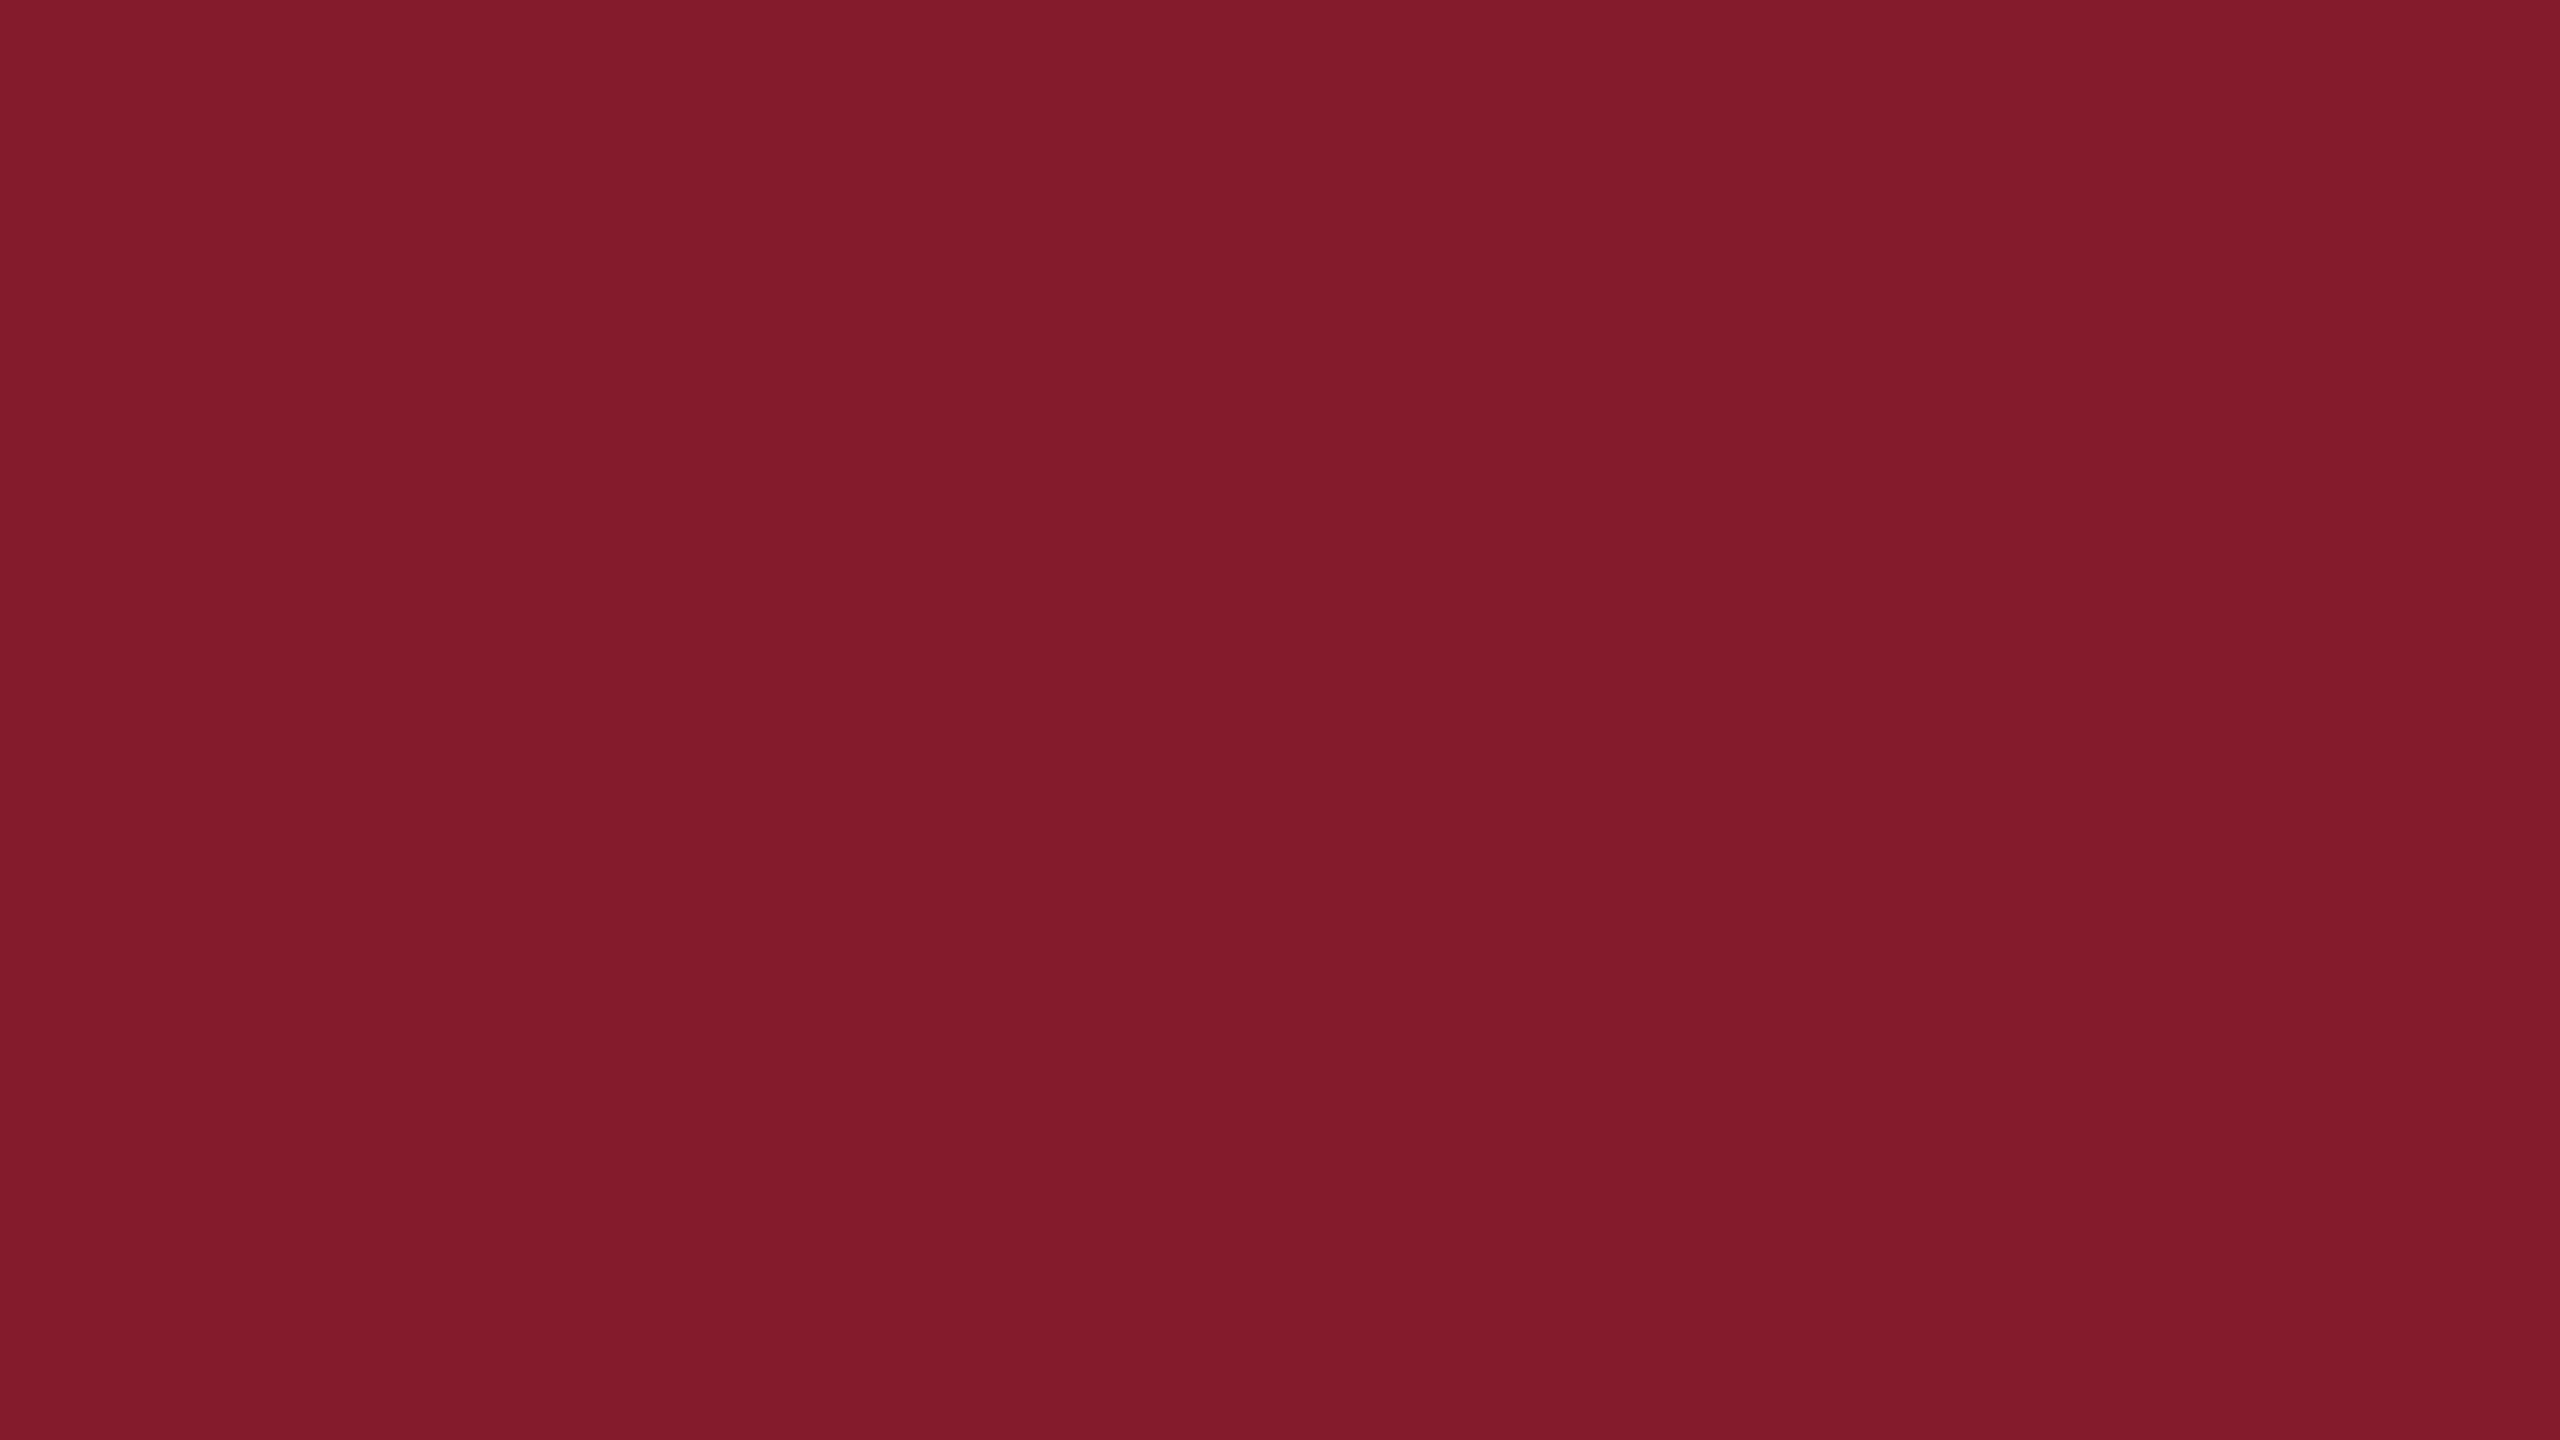 2560x1440 Antique Ruby Solid Color Background